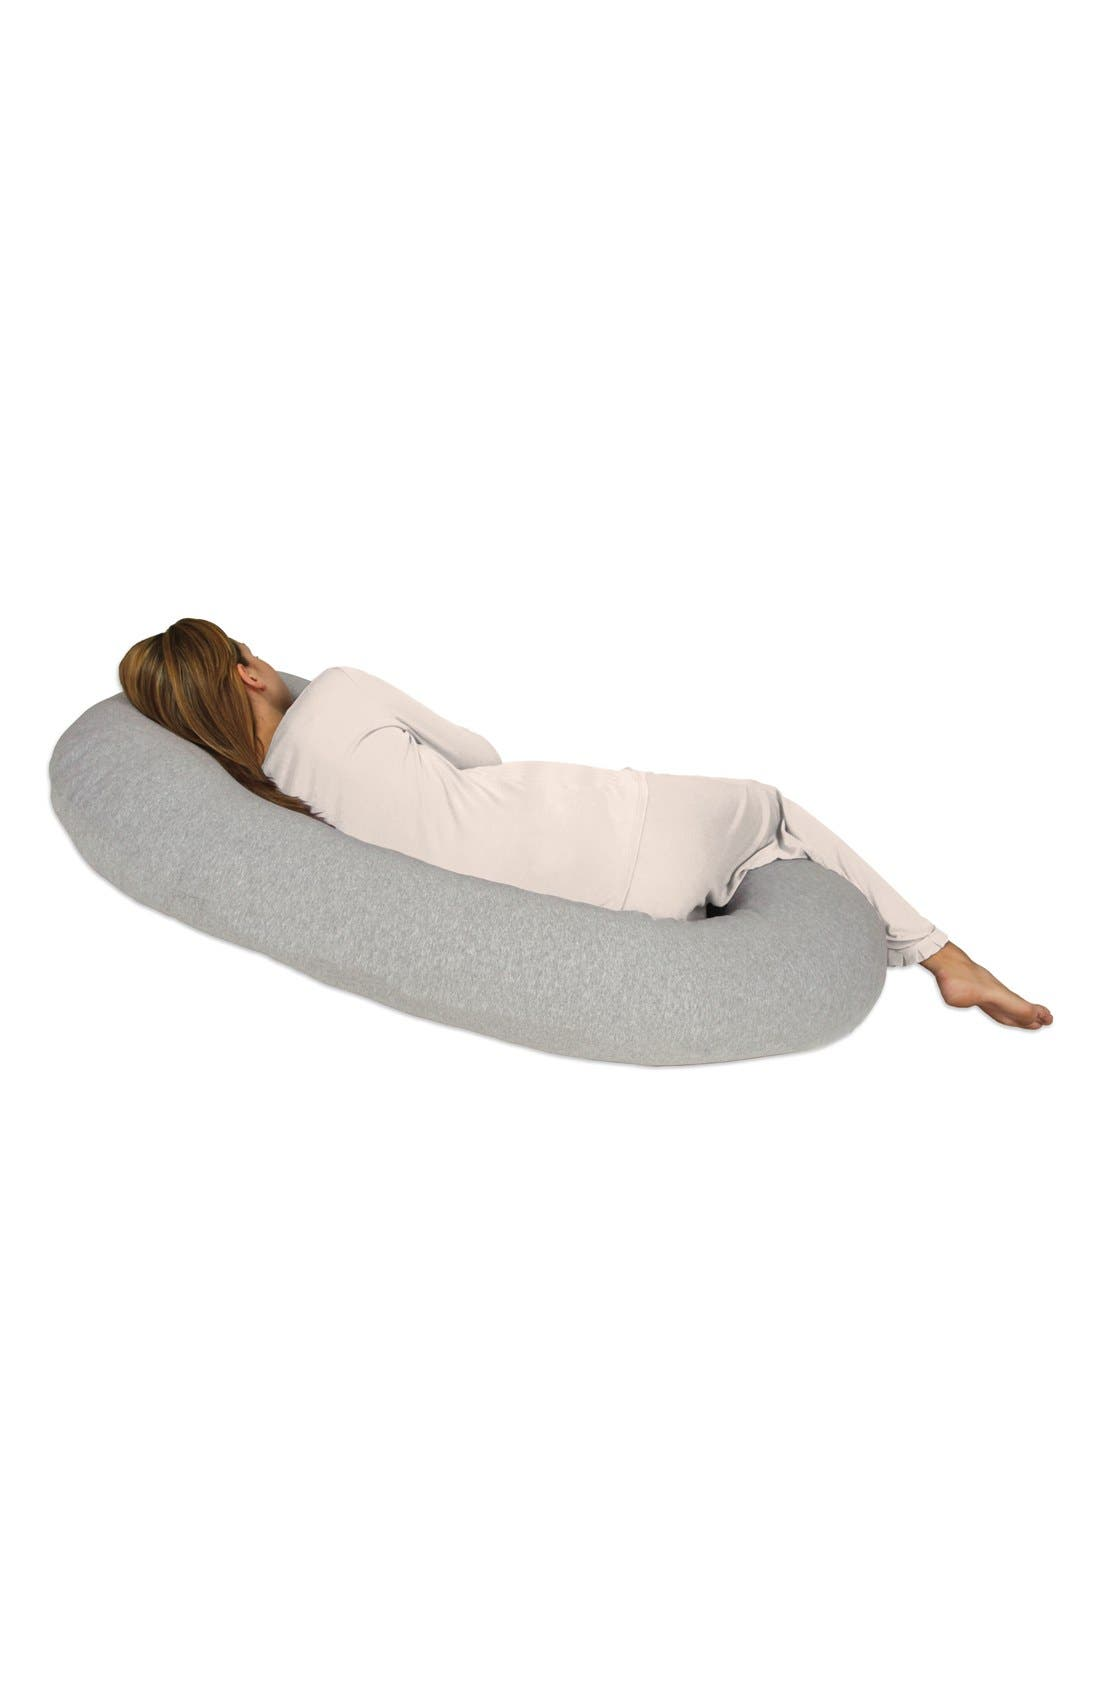 LEACHCO, Snoogle Chic Full Body Pregnancy Support Pillow with Jersey Cover, Alternate thumbnail 4, color, HEATHER GREY